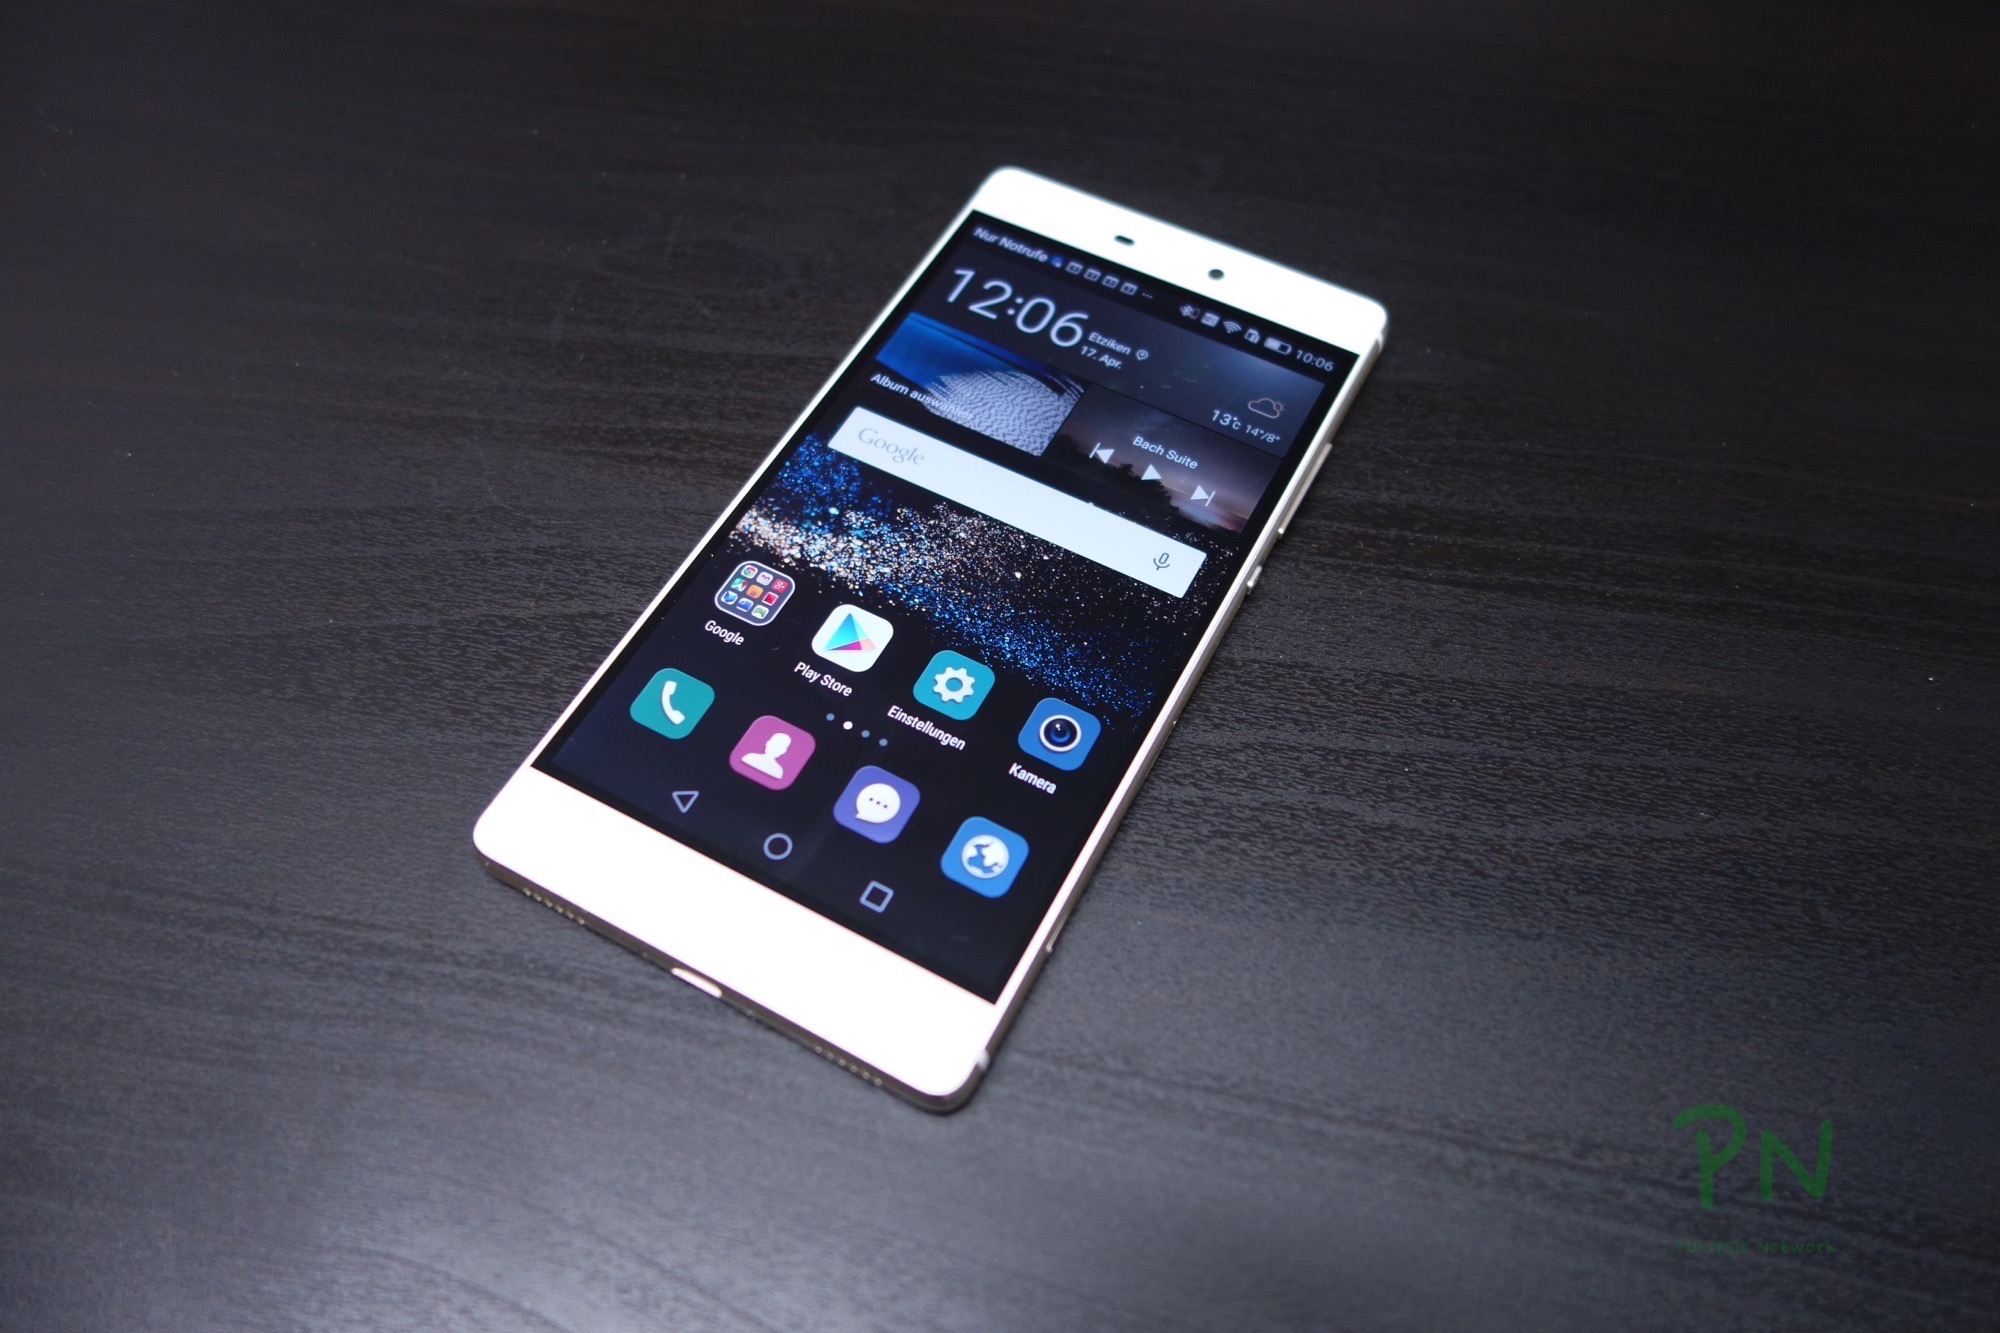 Huawei_P8_march 1 2017 security patch OTA download_androidsage